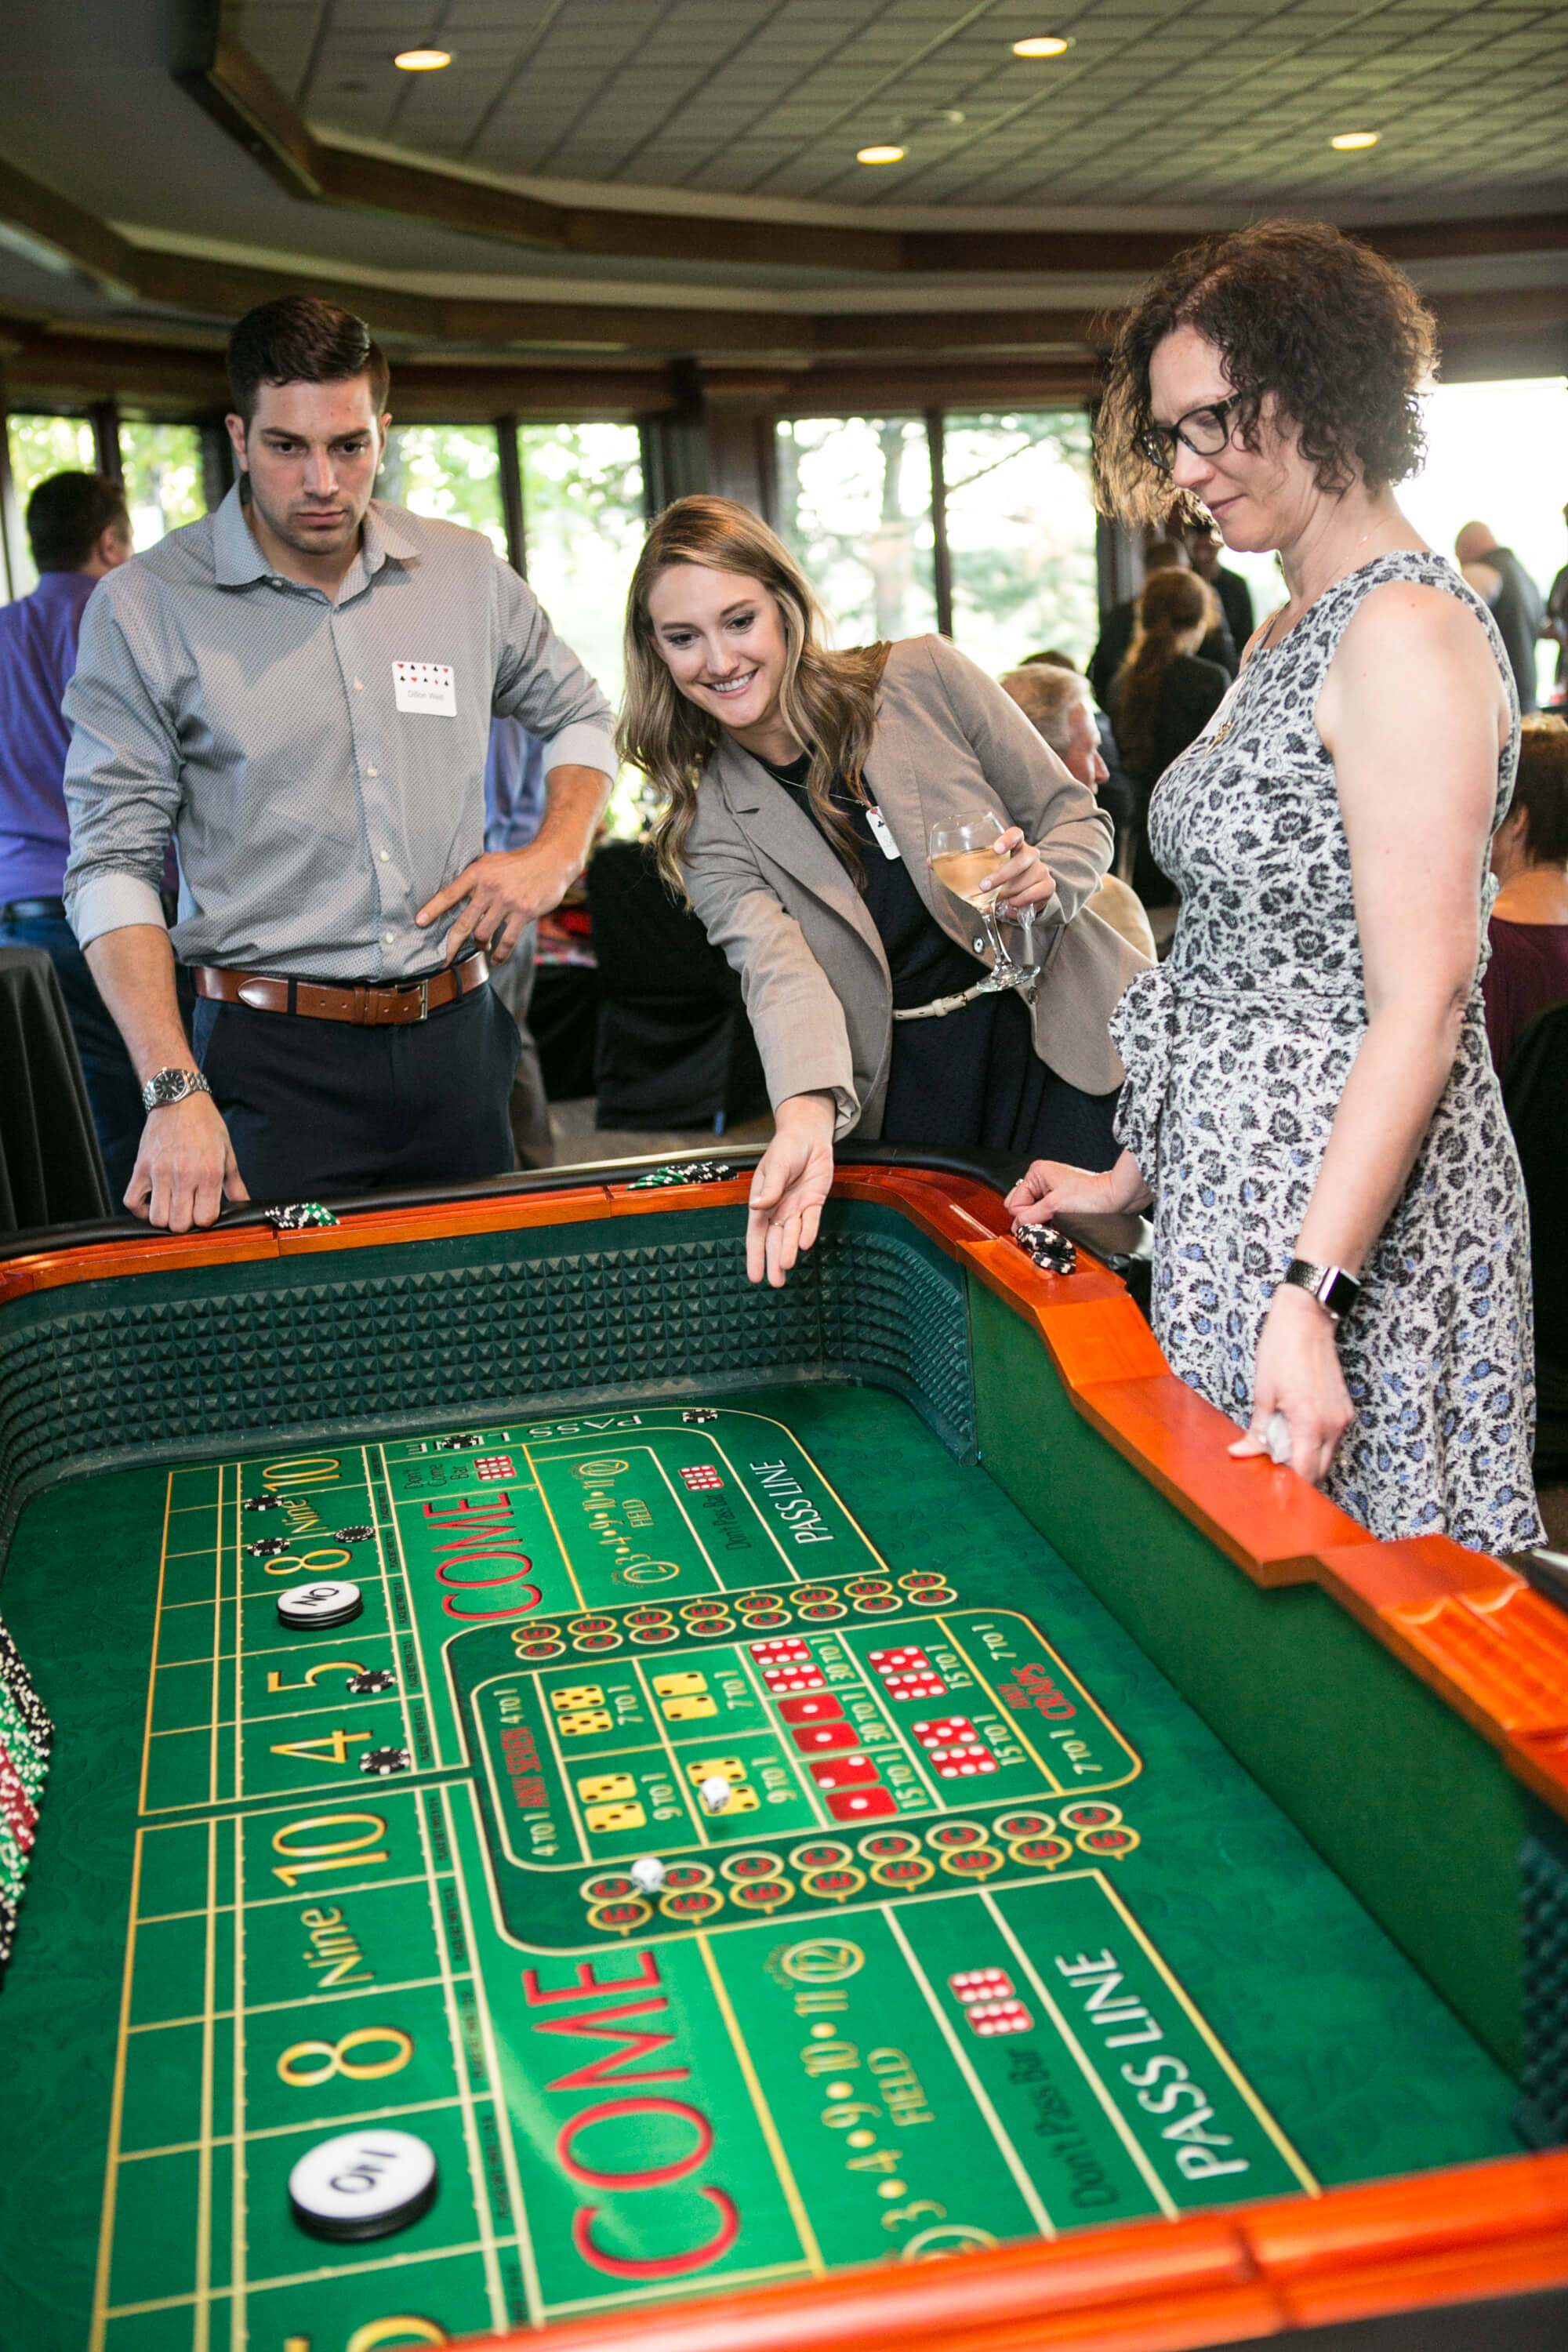 Harrison Financial Services Northwestern Mutual Wealth Management - A Night at the Casino photo